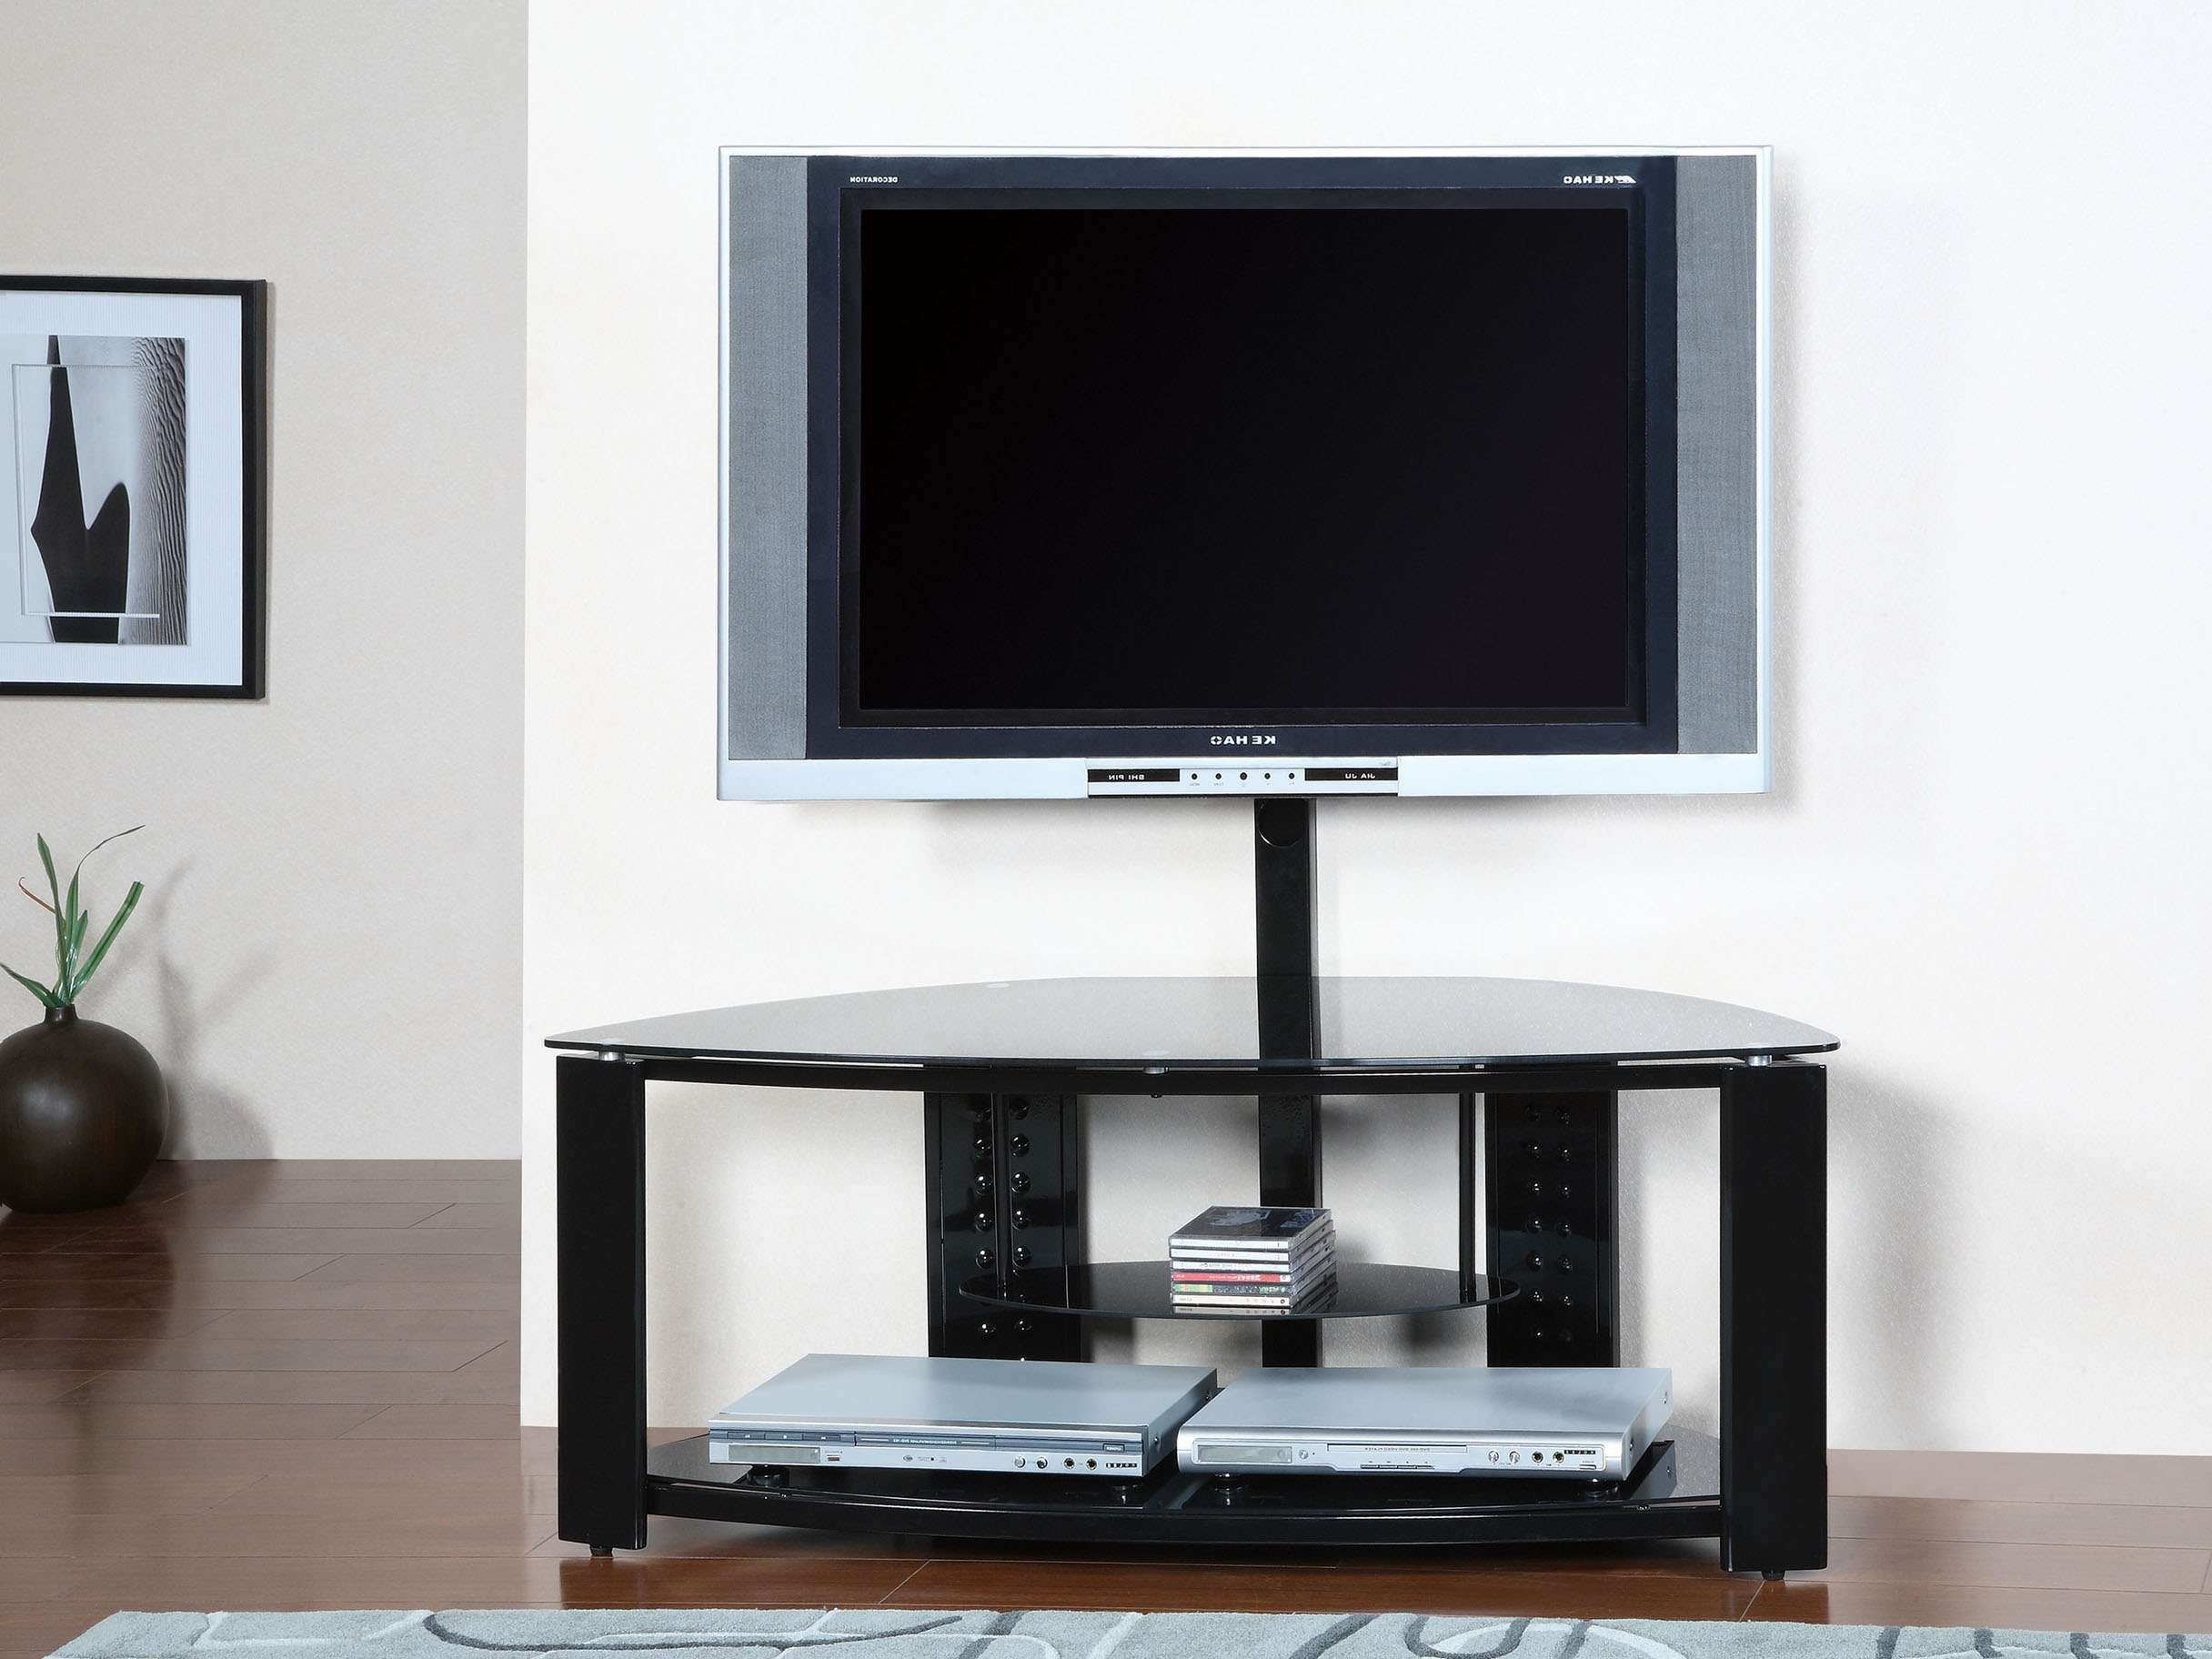 Tv Stand : 51 Staggering White Tv Stand With Mount Images Design Inside White Tv Stands For Flat Screens (View 8 of 20)